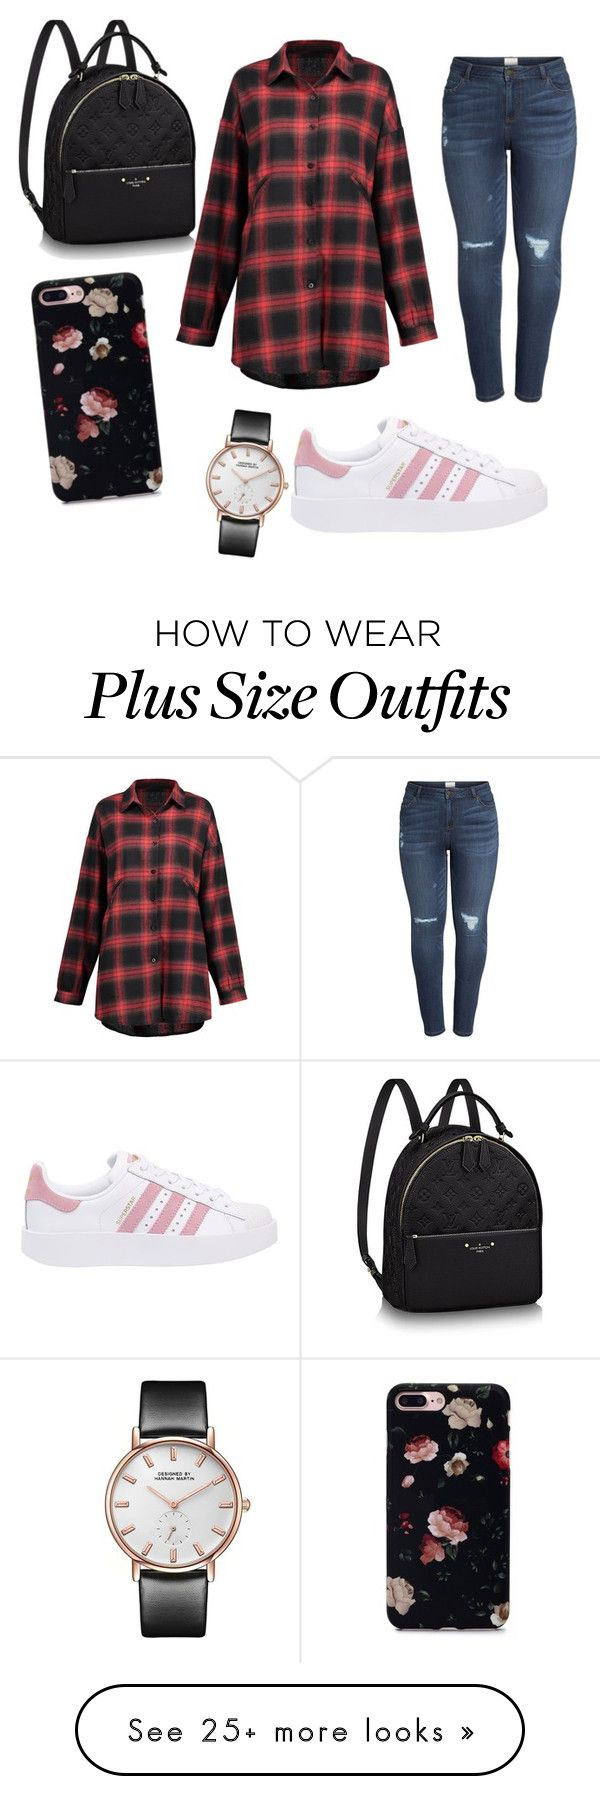 """..."" by galaxy-breath on Polyvore featuring Caslon, adidas Originals and plus size clothing"